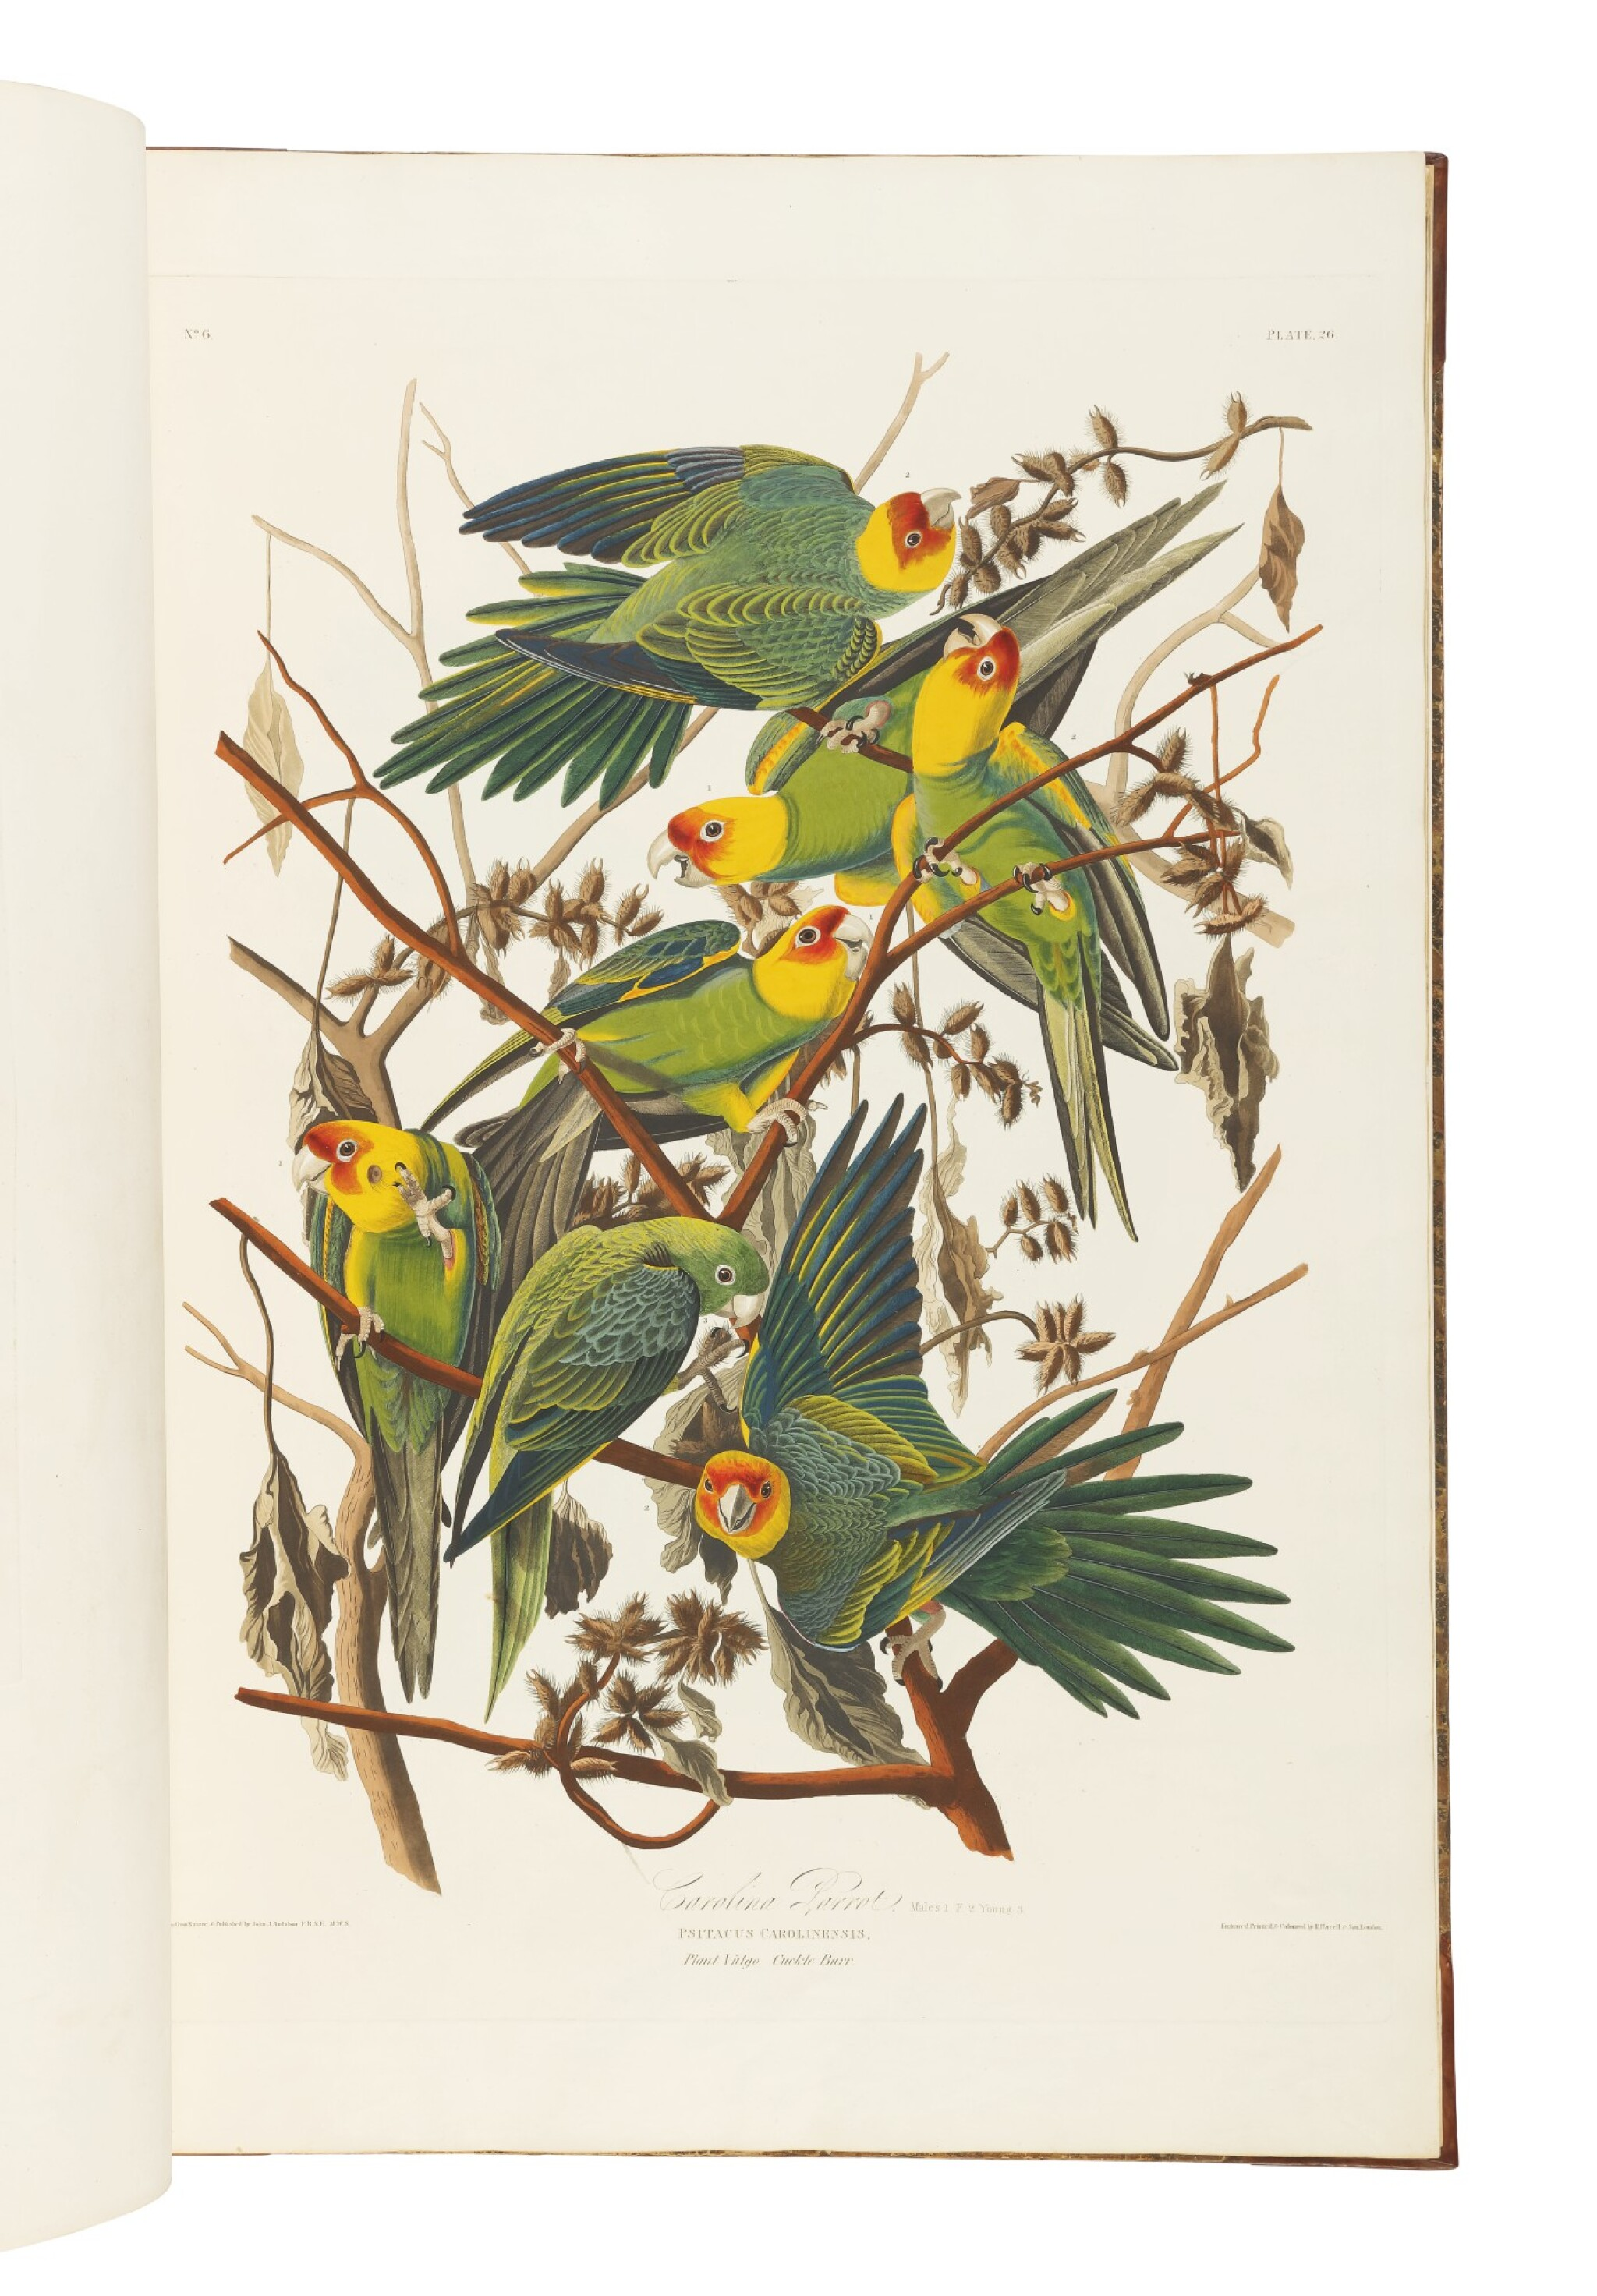 View full screen - View 1 of Lot 250. JOHN JAMES AUDUBON | The Birds of America; from Original Drawings by John James Audubon. London: Published by the Author, 1827–1838.